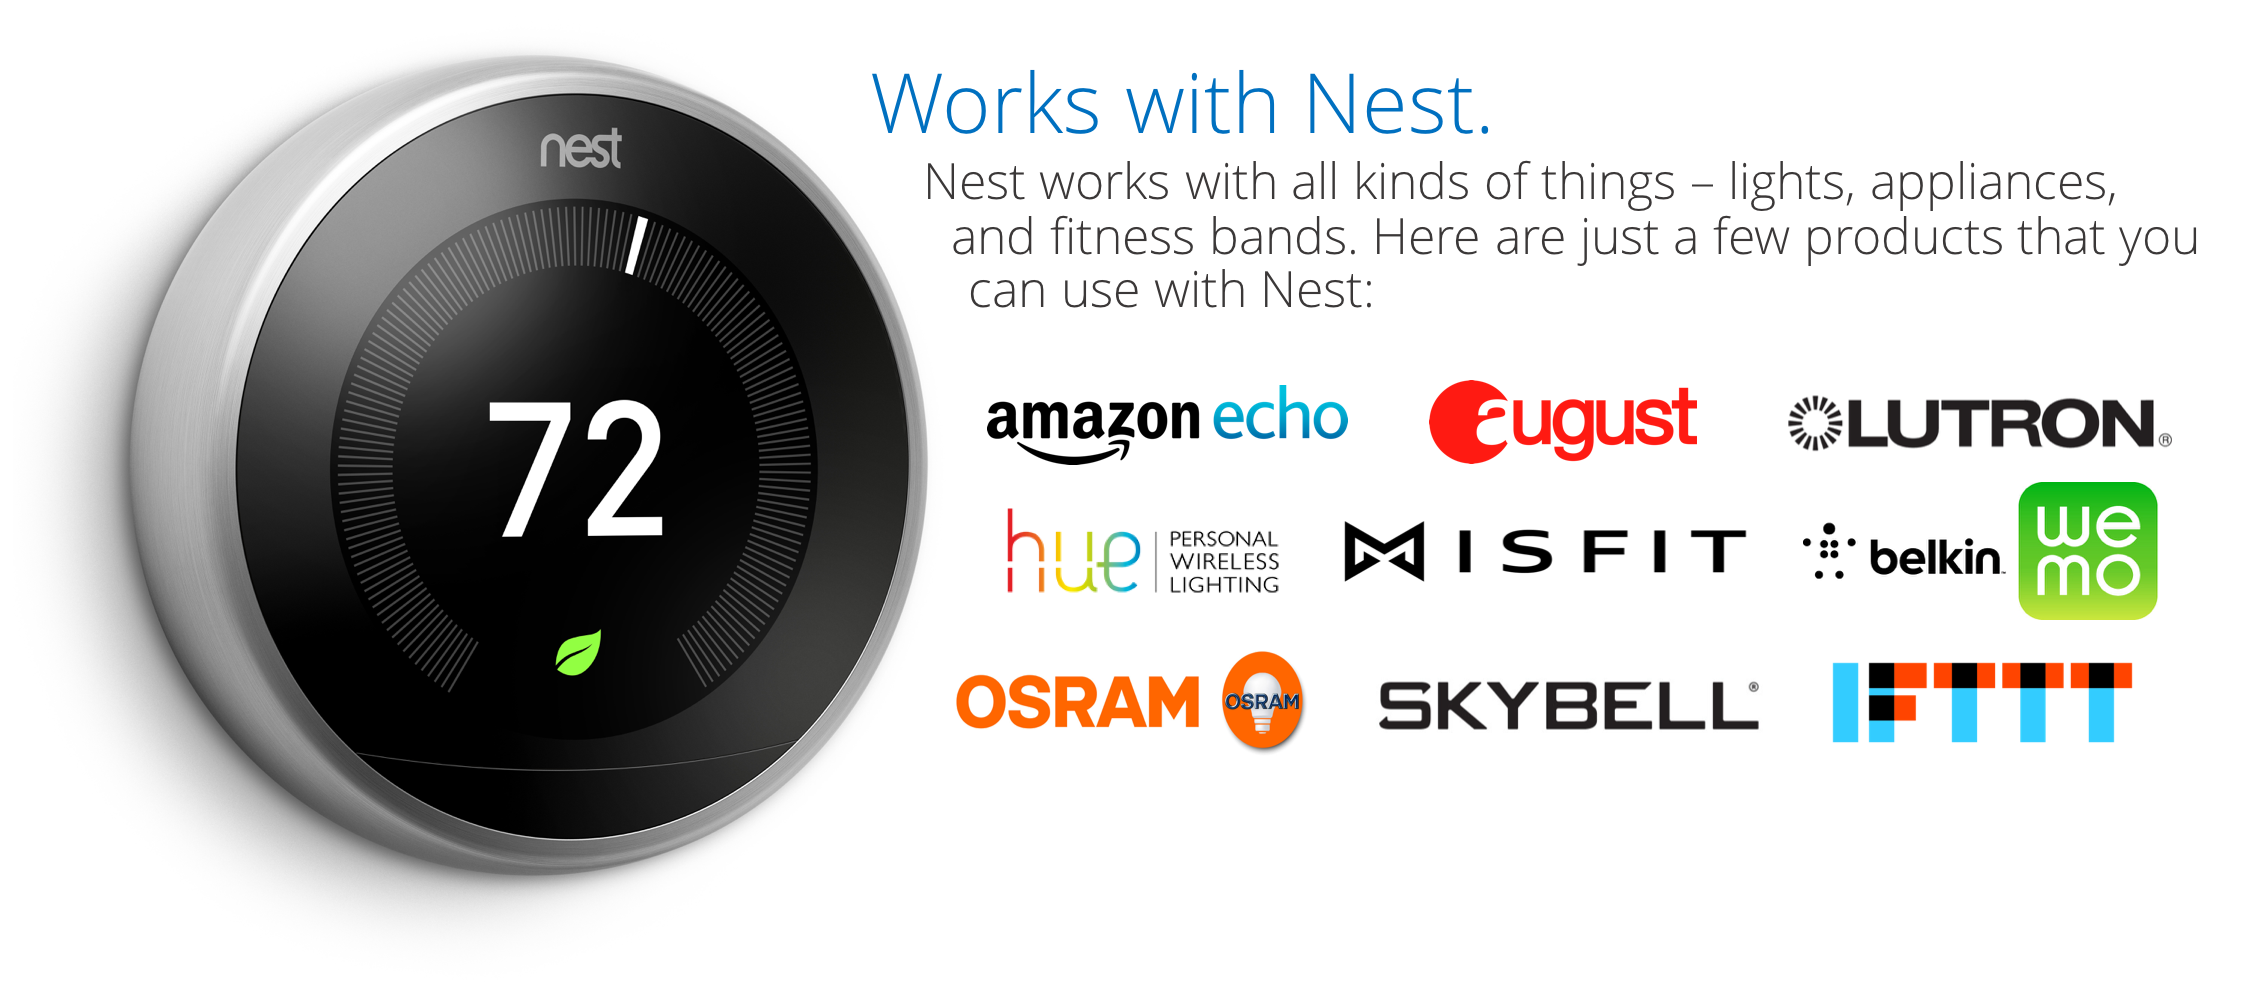 Works With Nest partners